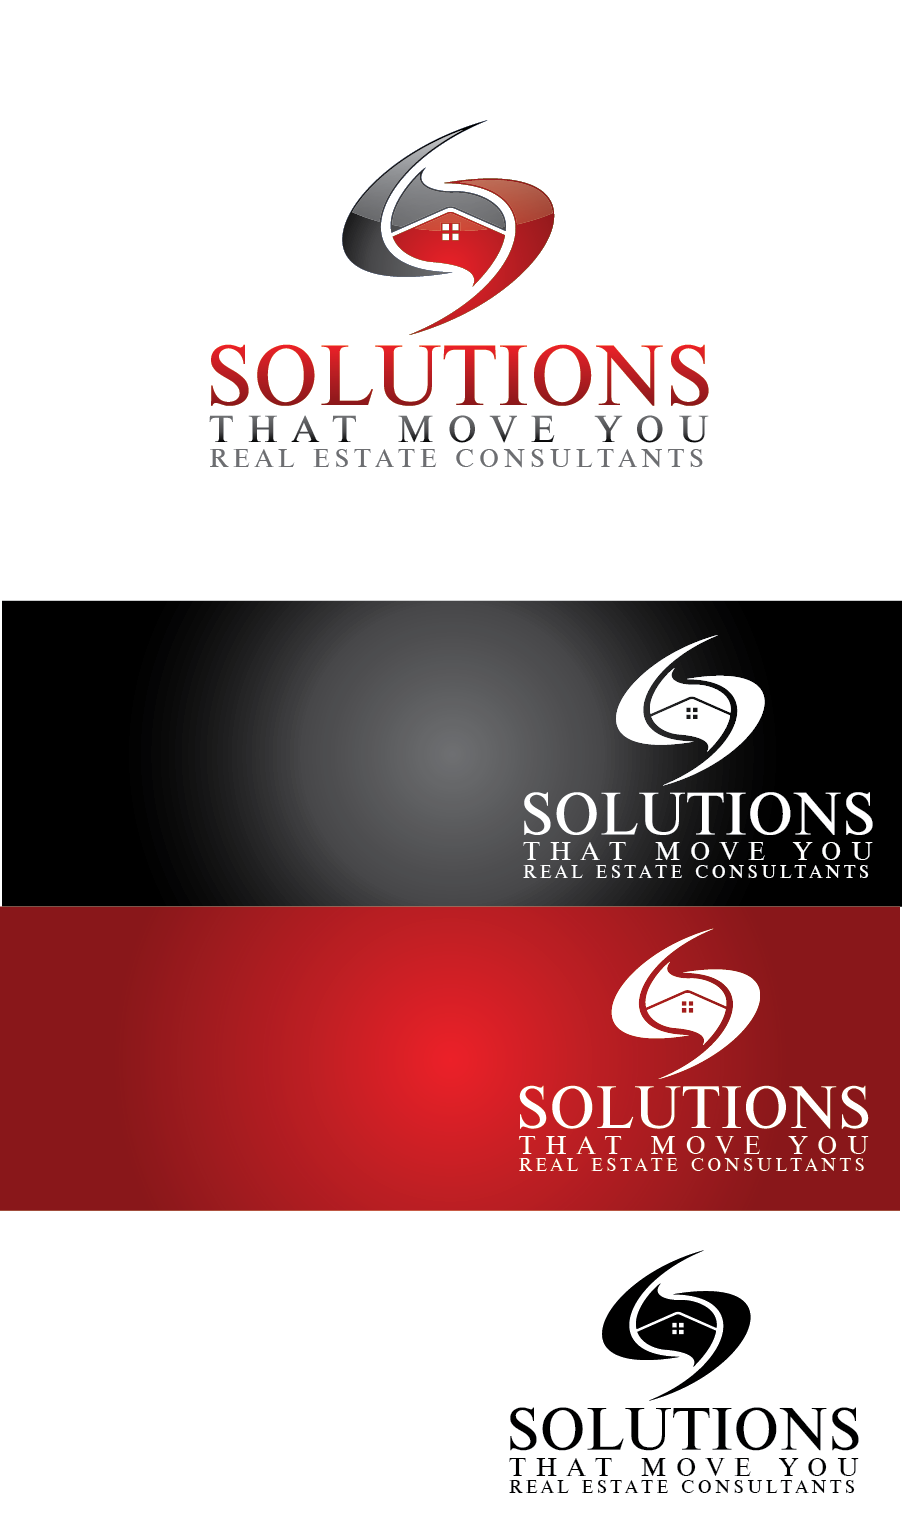 Logo Design by Private User - Entry No. 31 in the Logo Design Contest Imaginative Logo Design for Solutions That Move You.